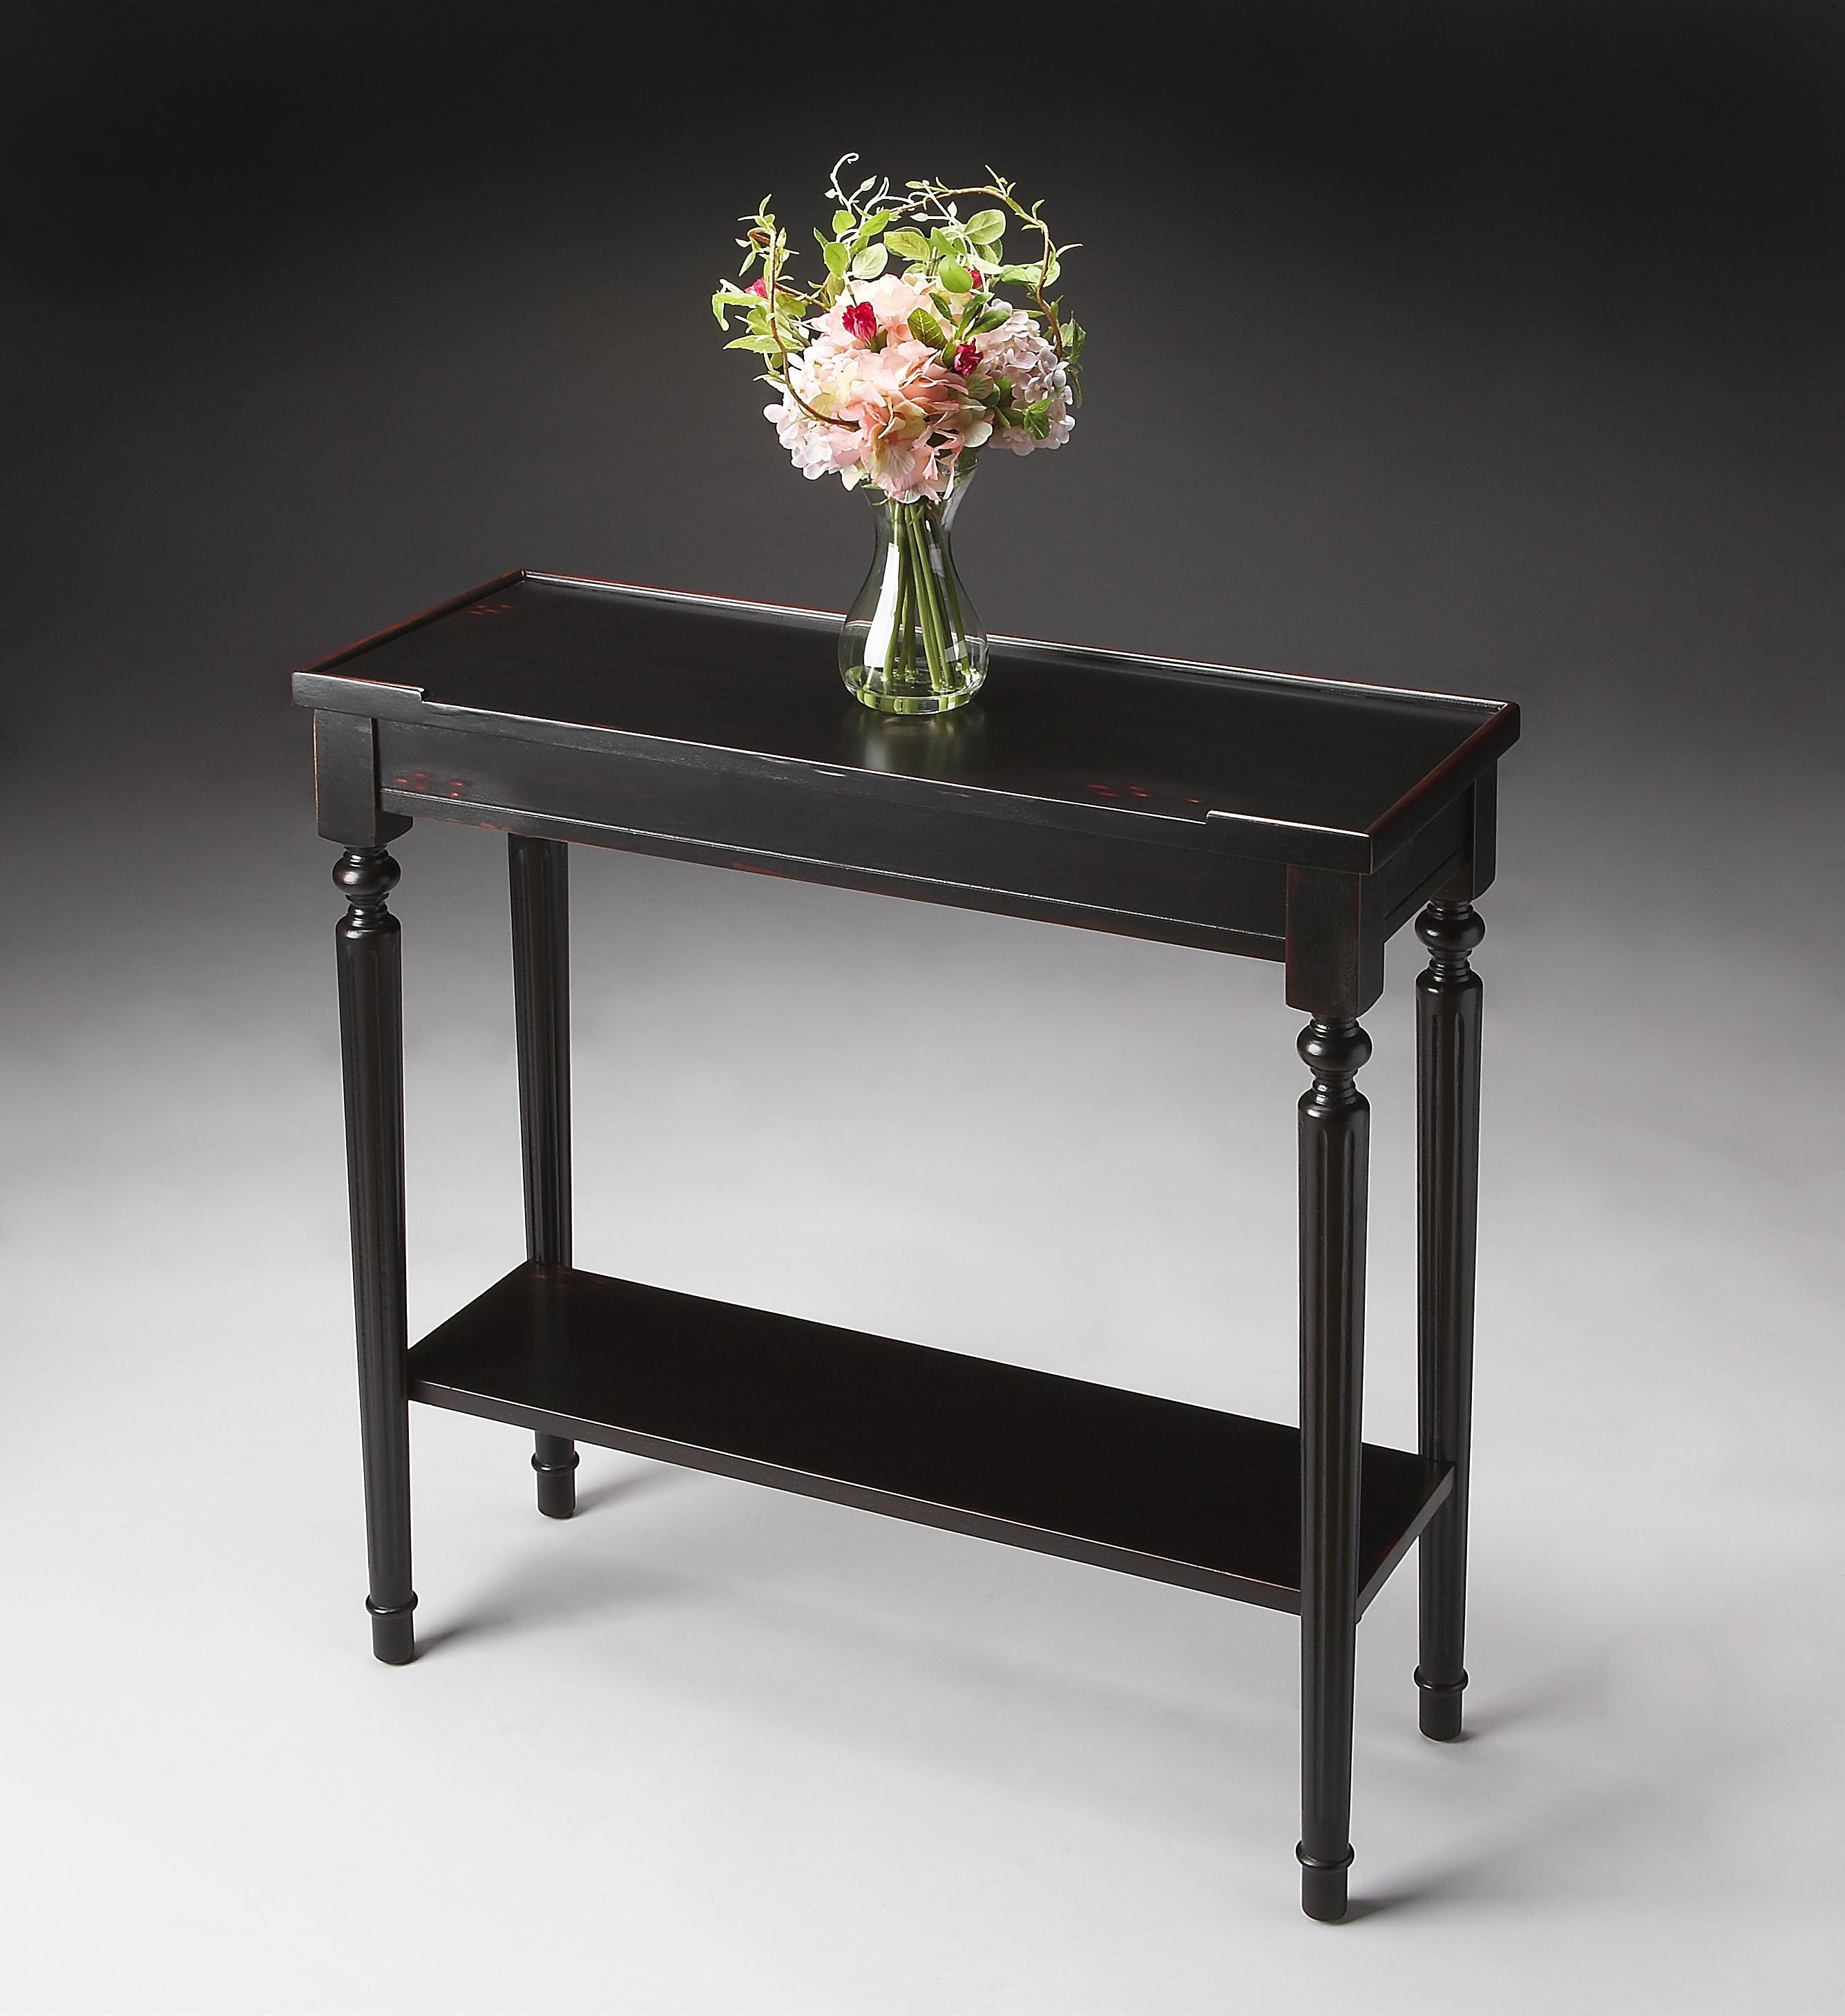 Butler Specialty Company Masterpiece Console Table - Item Number: 7036136